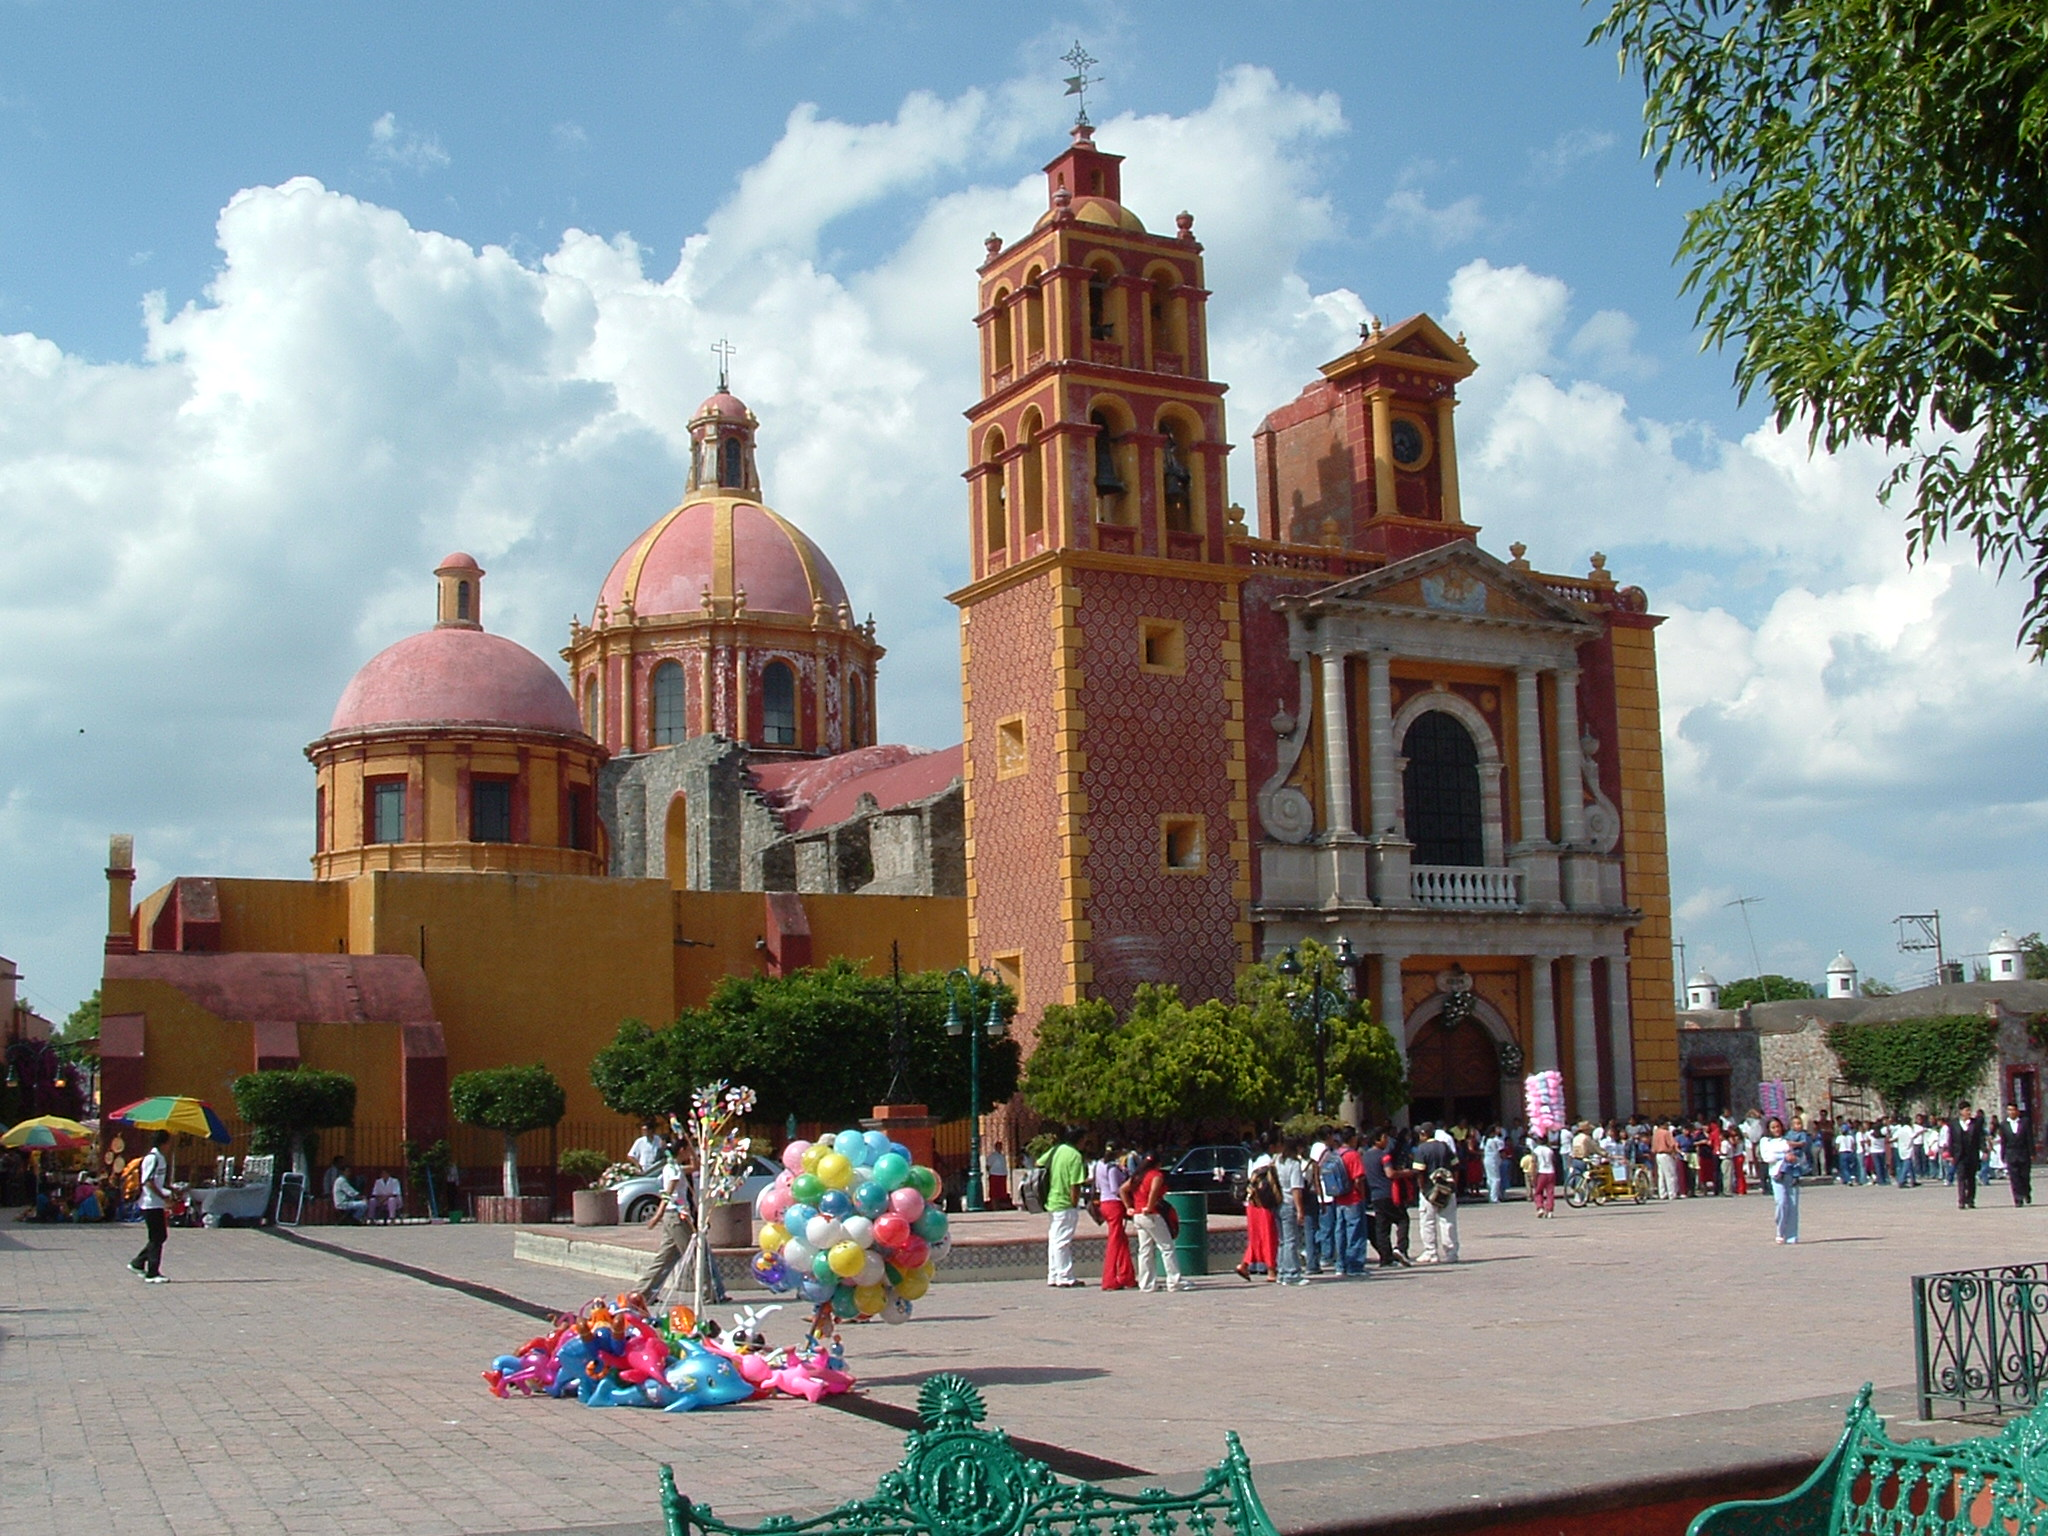 A photo from the city of Queretaro, Mexico, taken by Julie Hempel.